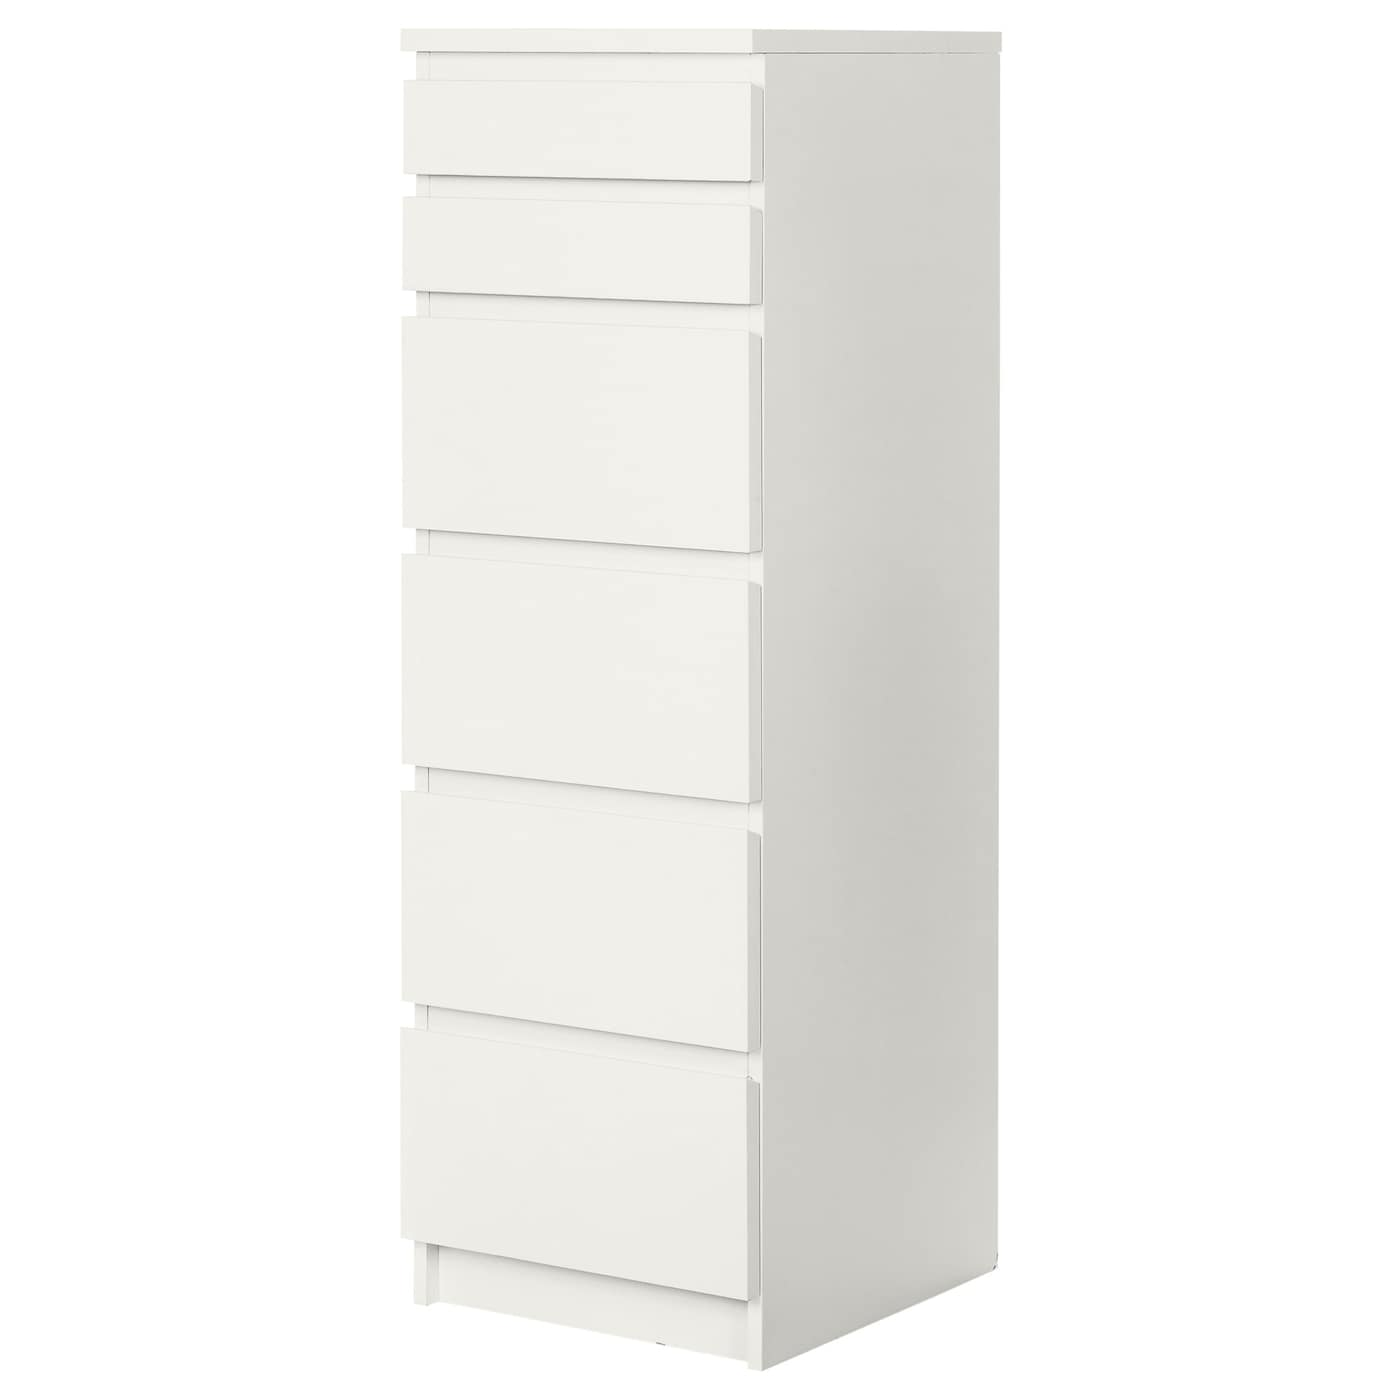 Kommode ikea  MALM Chest of 6 drawers White/mirror glass 40x123 cm - IKEA